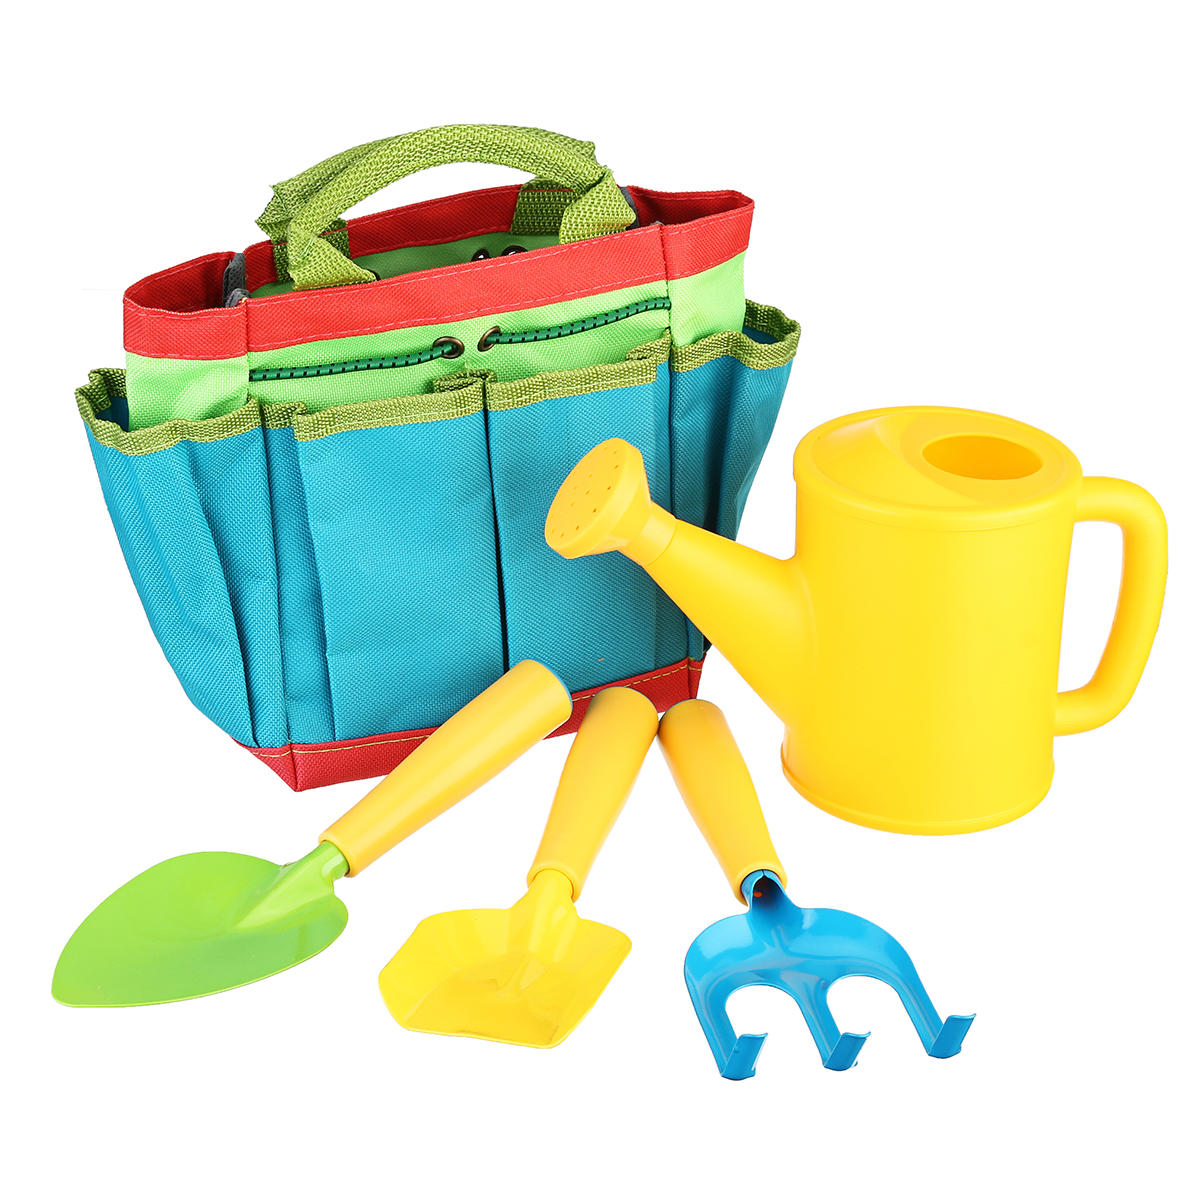 Kids Gardening Tool Sets Children Garden Tool Kit Bag Shovel Children Garden Tool Toys